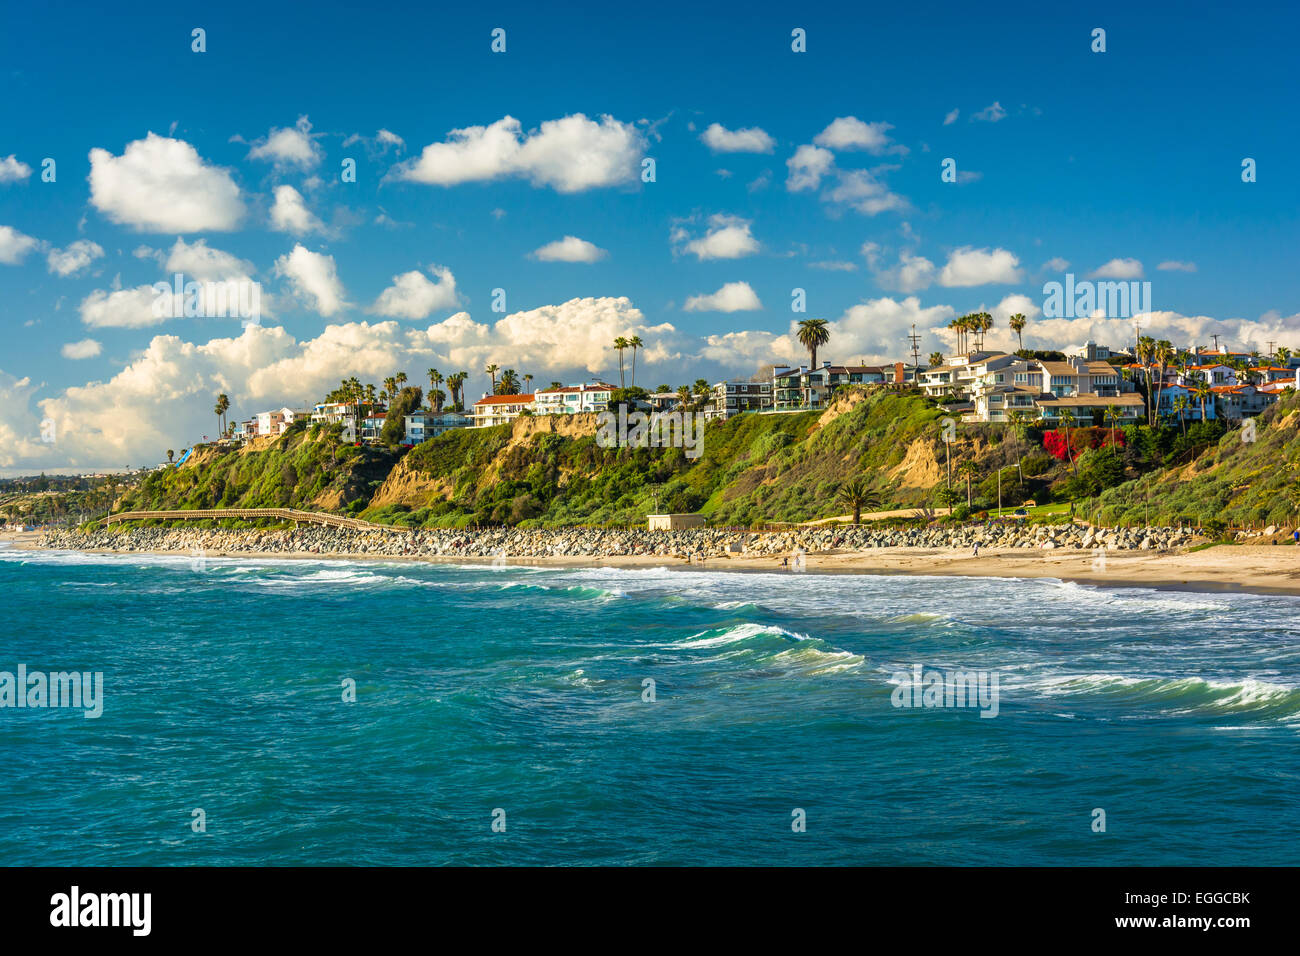 View of cliffs along the beach in San Clemente, California. Stock Photo